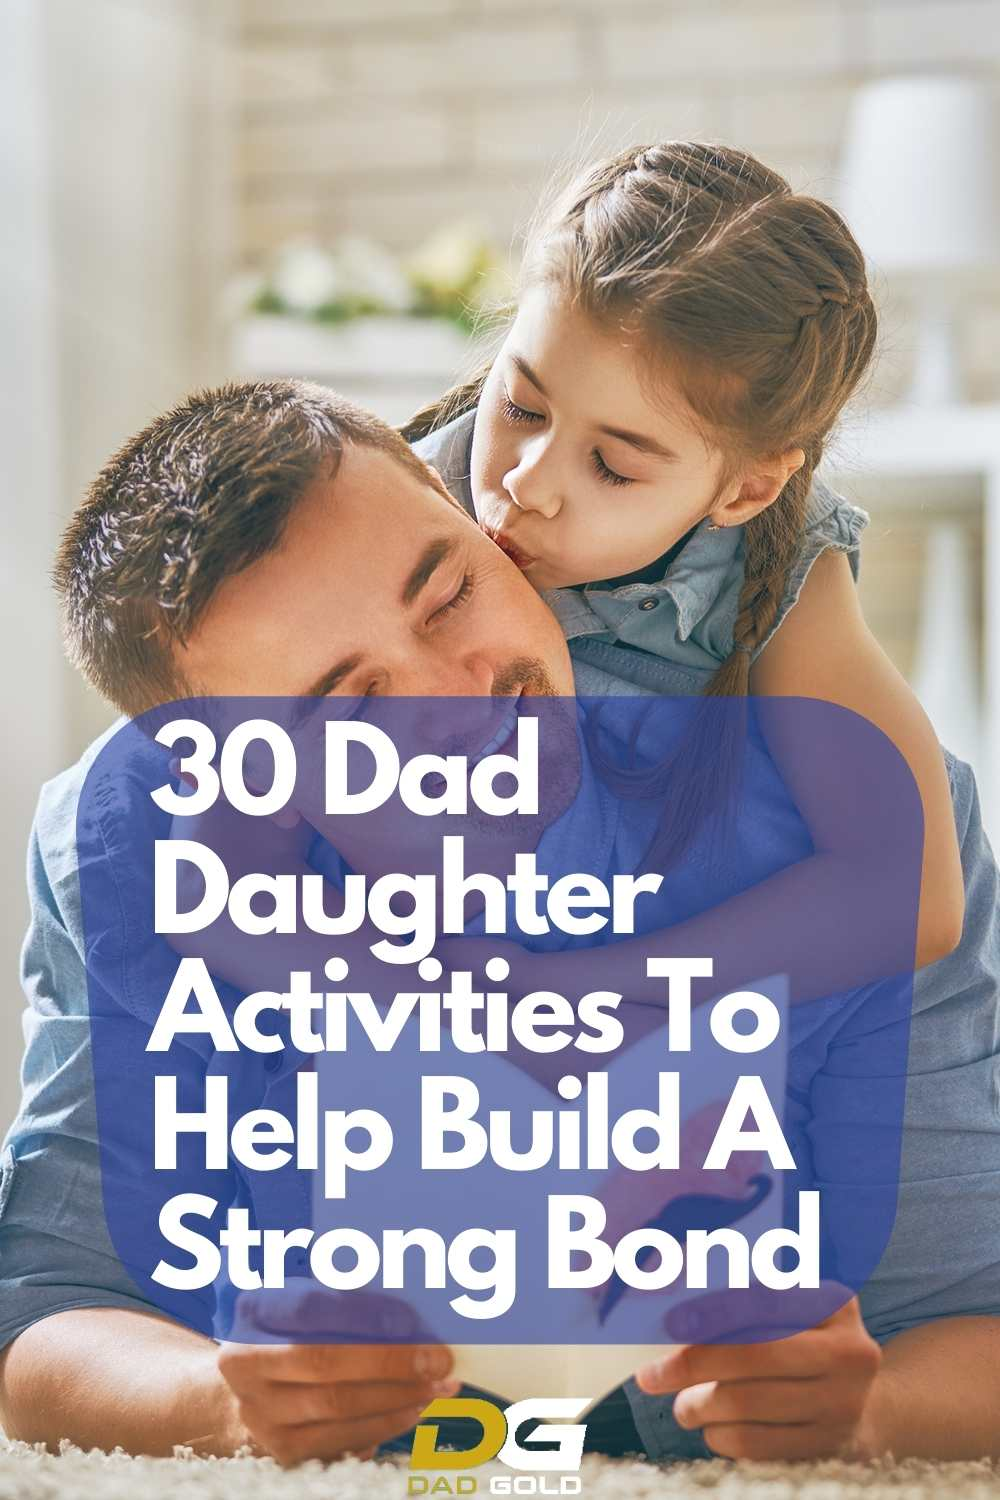 30 Dad Daughter Activities To Help Build A Strong Bond